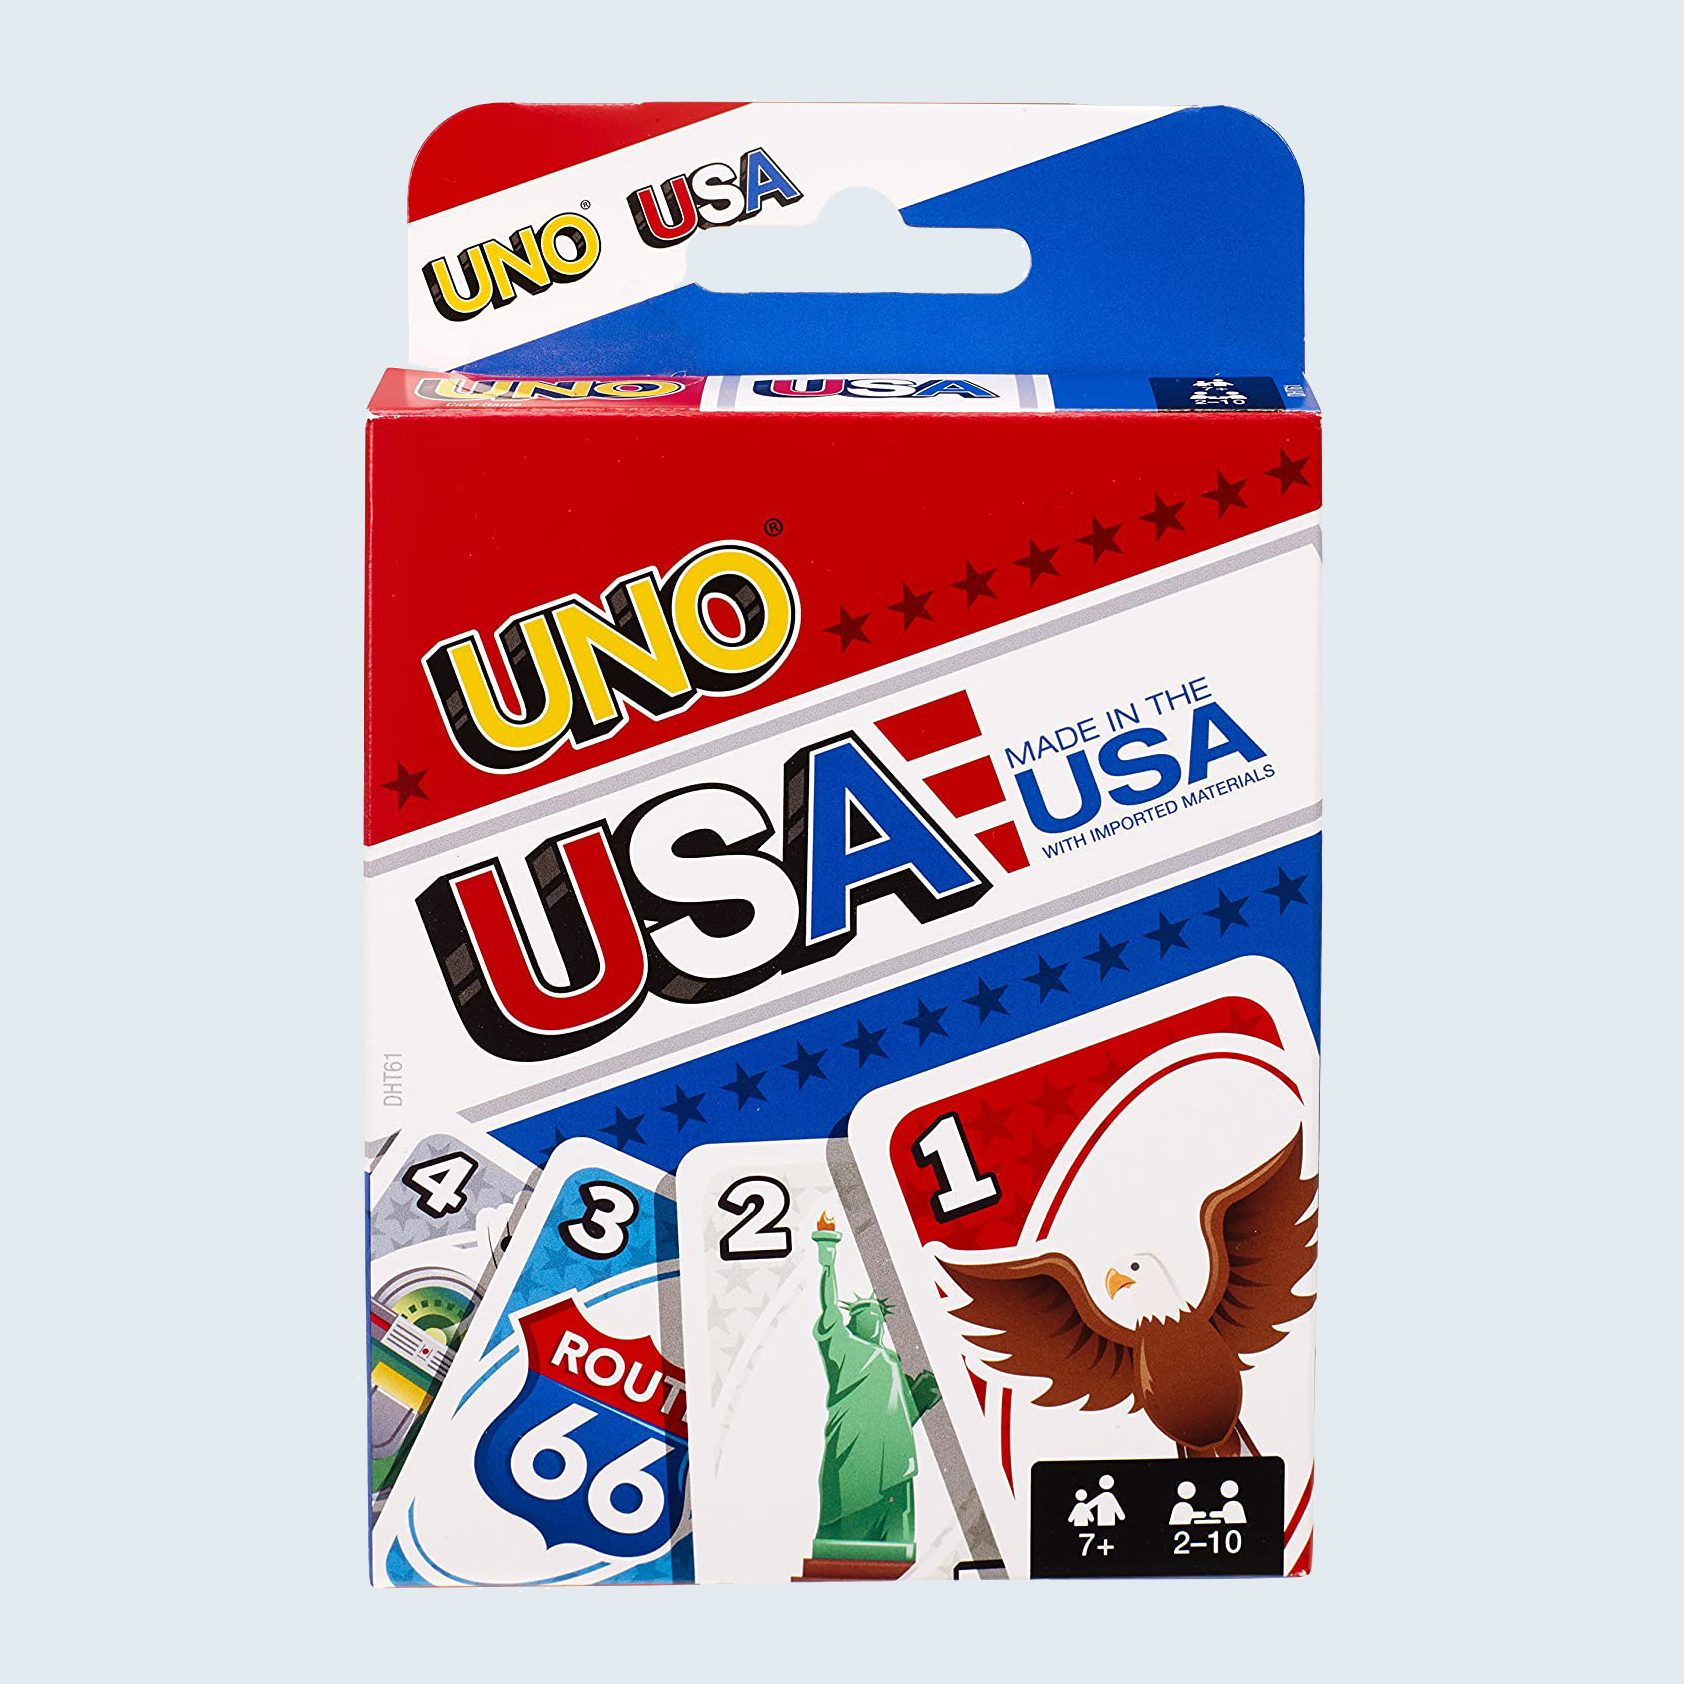 USA UNO card game for fourth of July